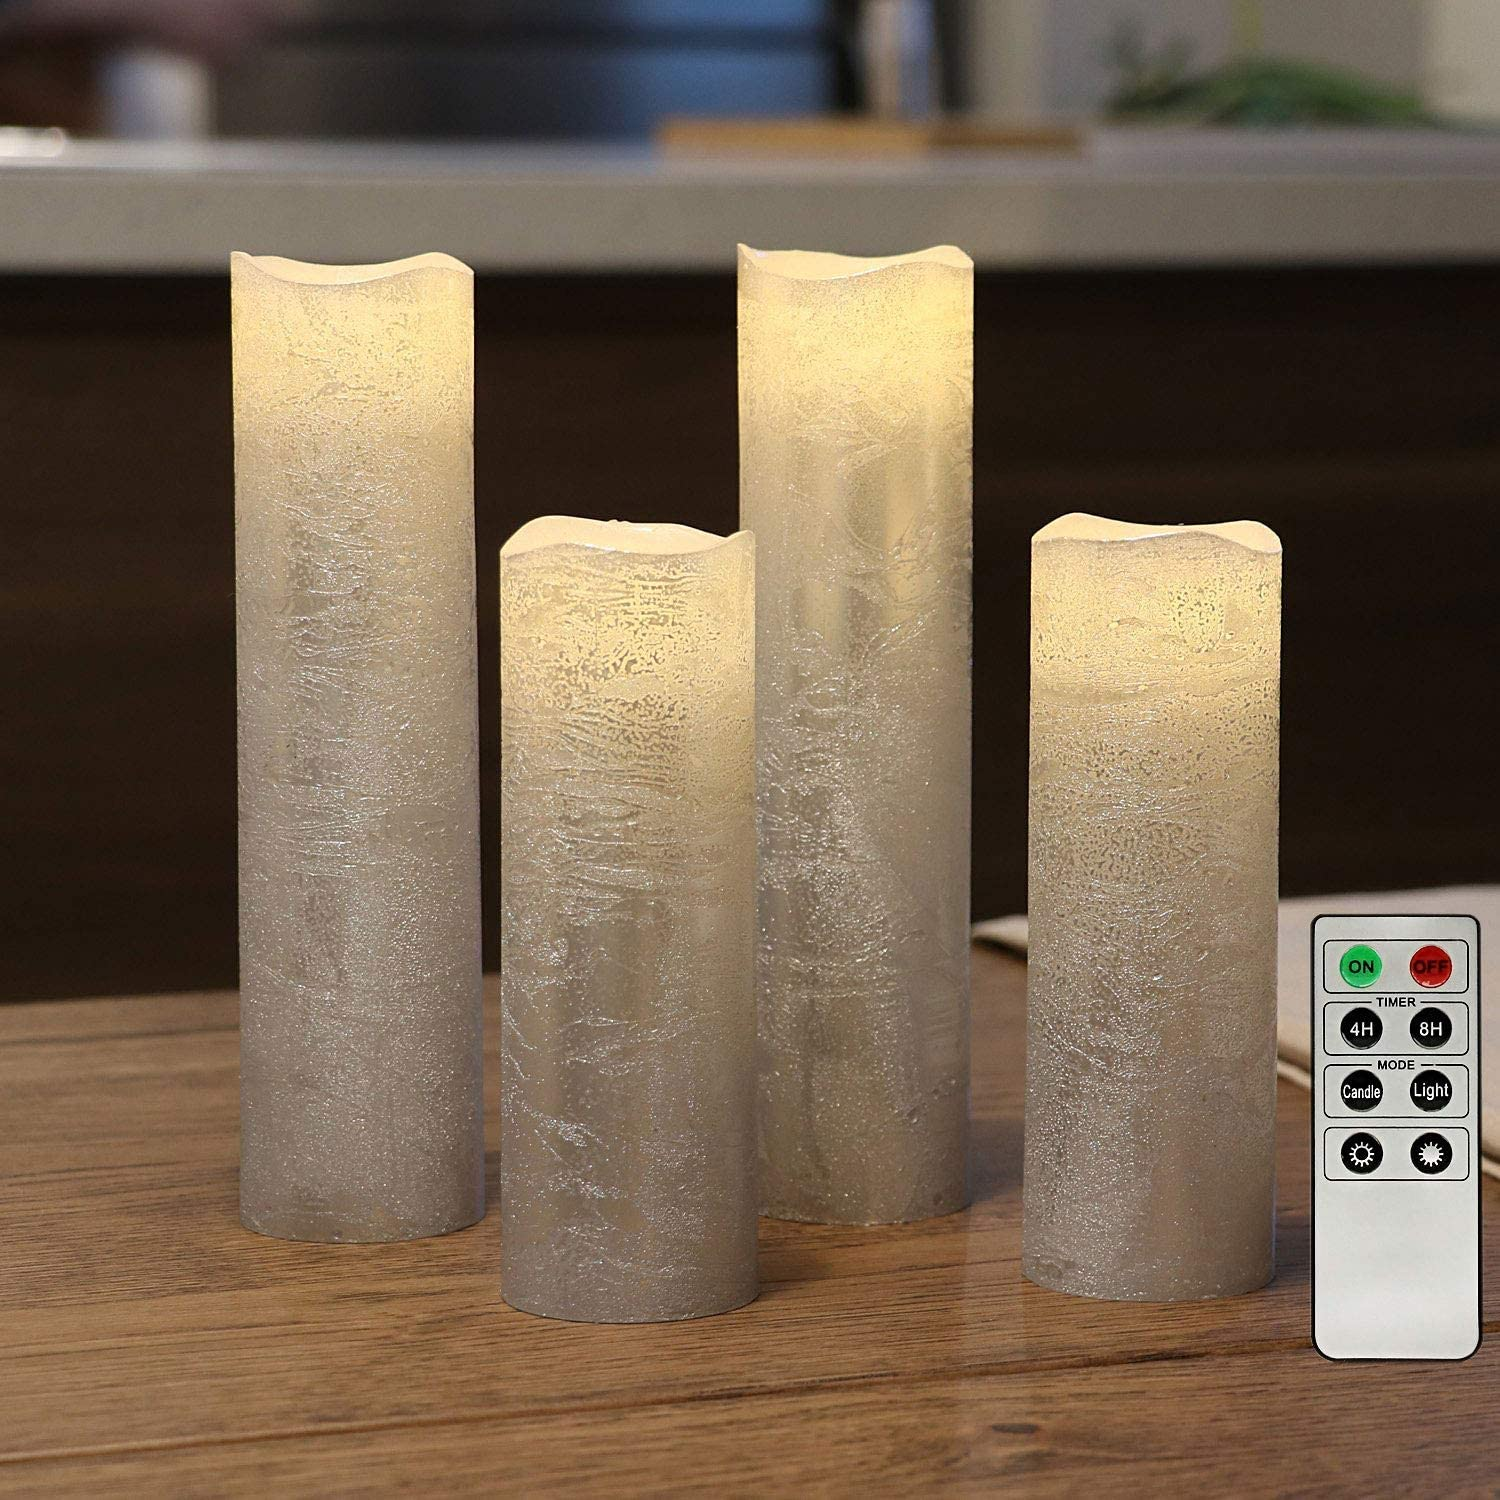 Slim Battery Operated Led Candles, Flameless Candles with Remote, Textured Wax Finish, Batteries Included - Dia.2 inches-Set of 4